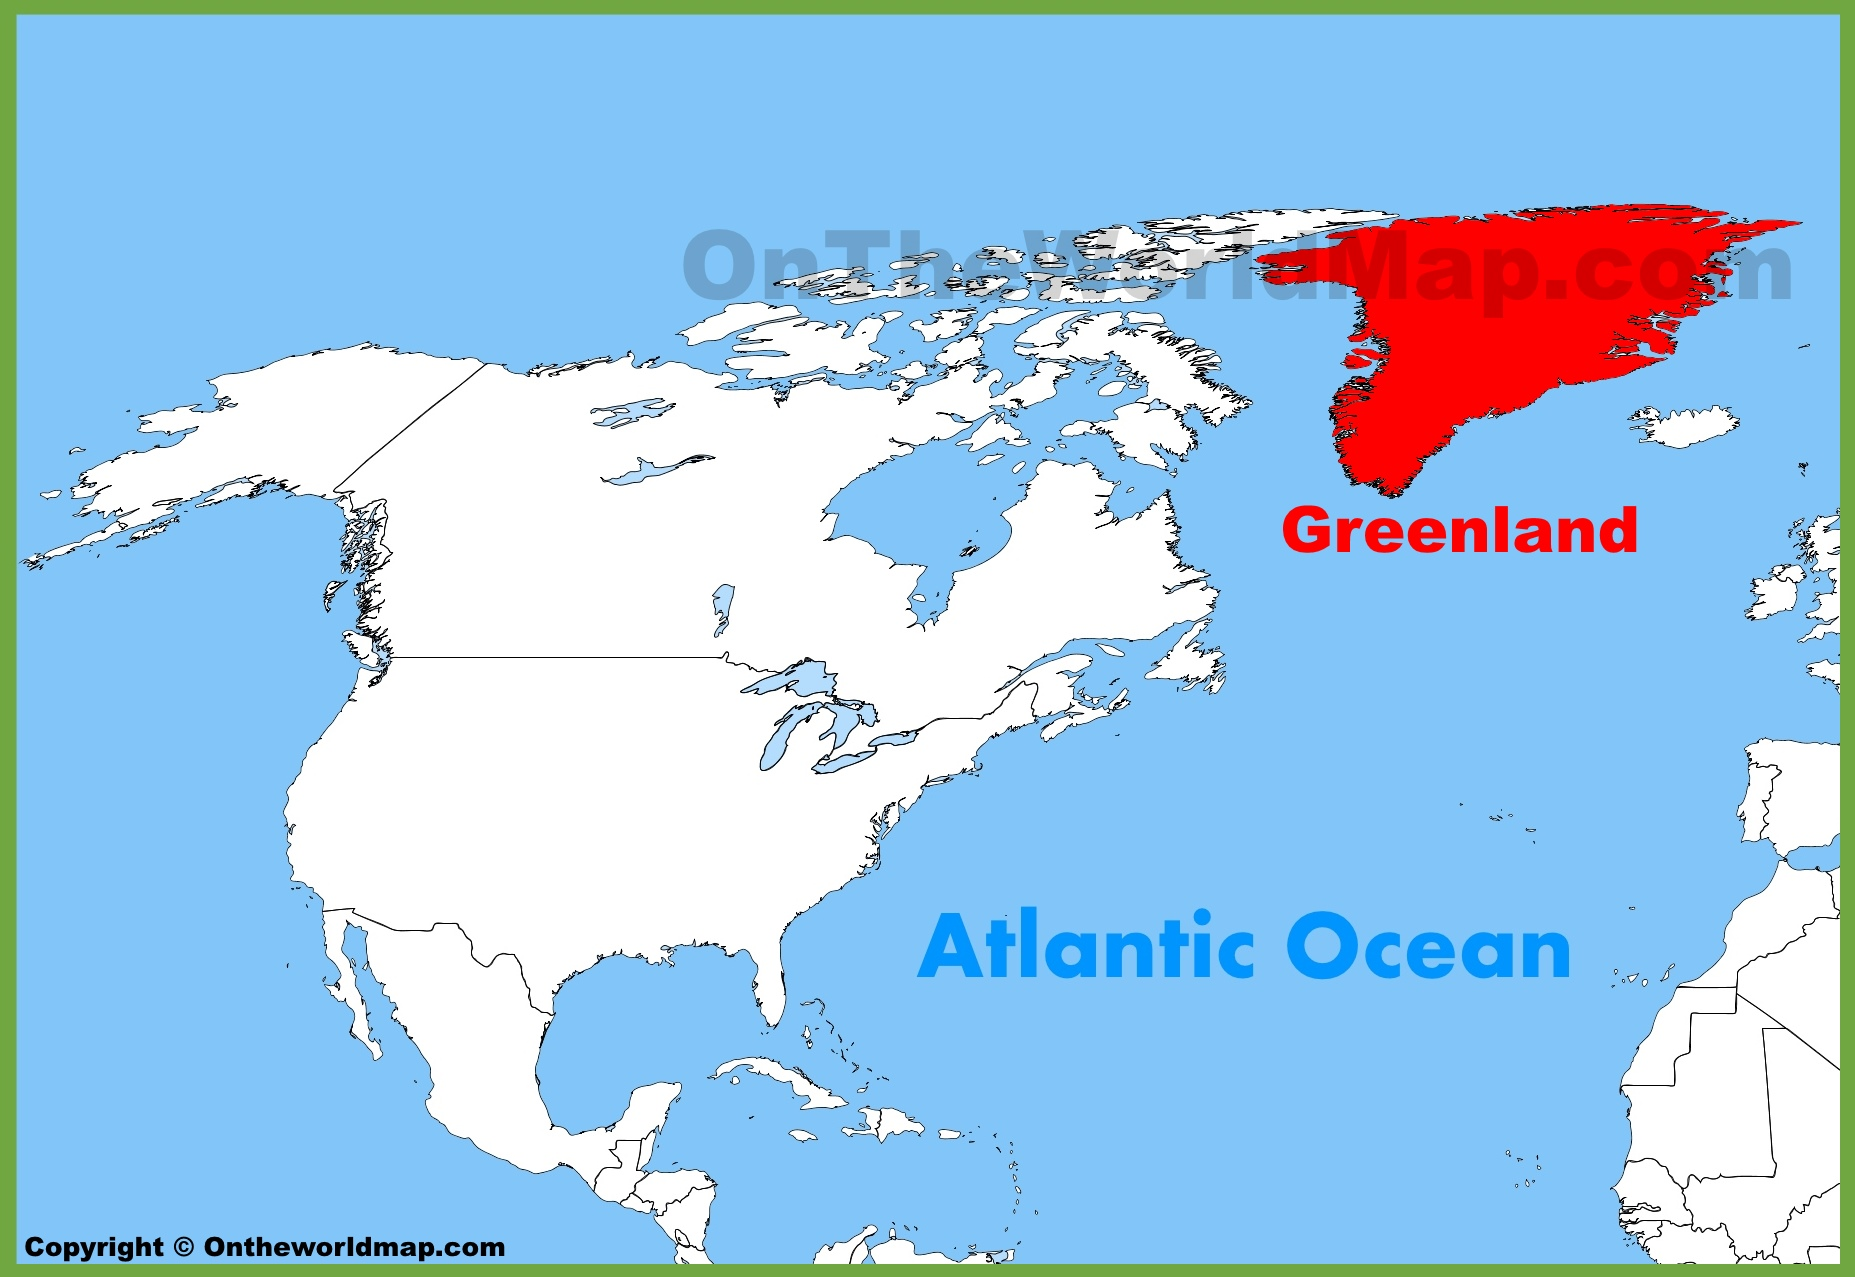 Greenland location on the north america map greenland location on the north america map gumiabroncs